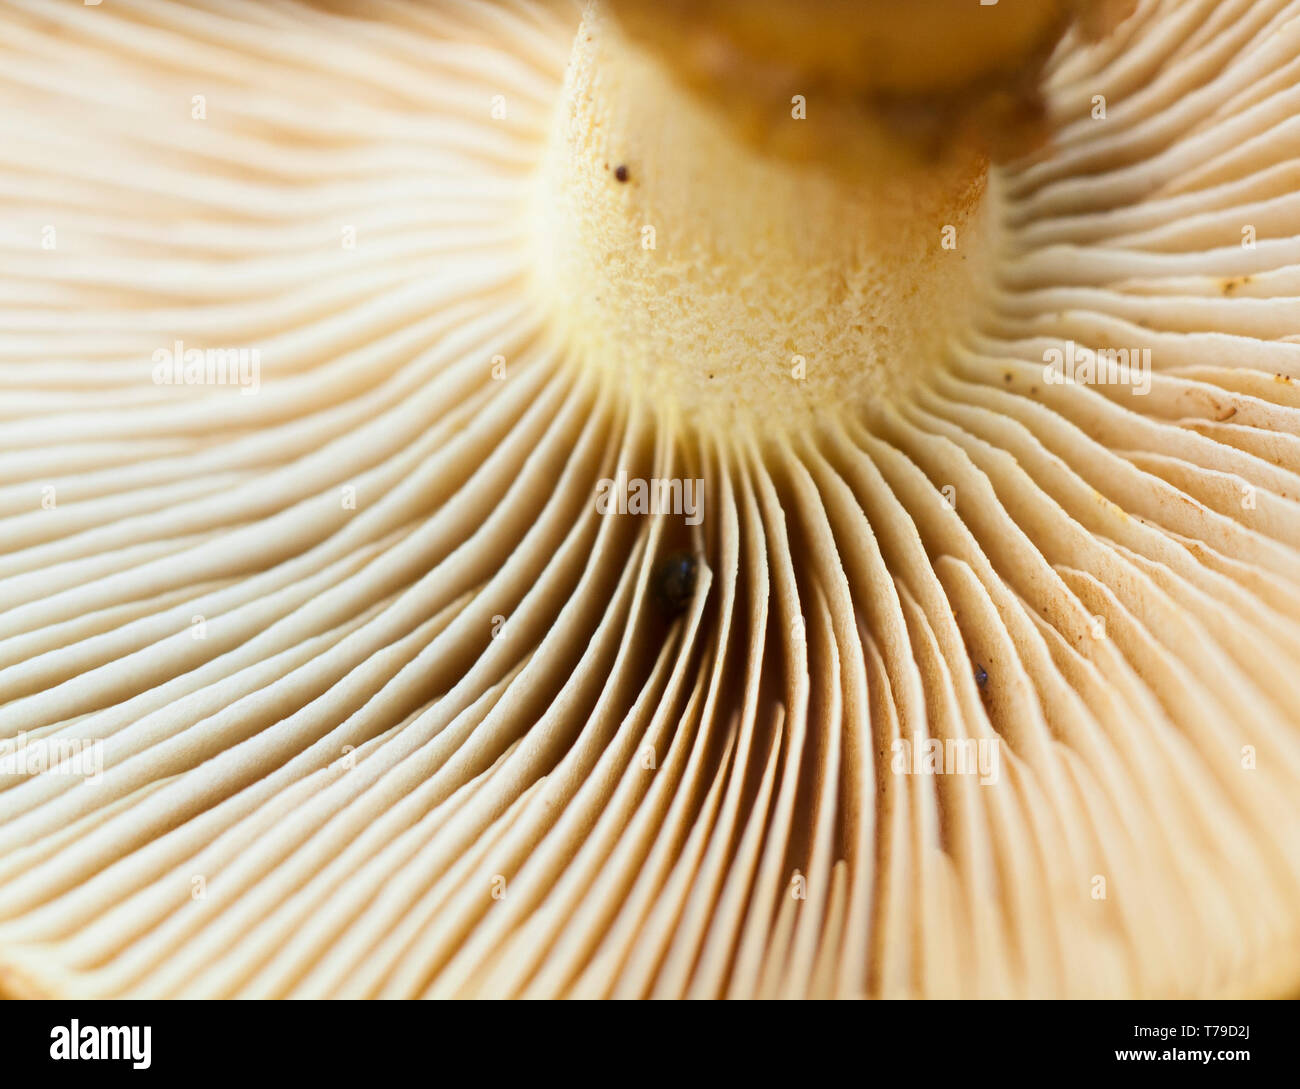 Close up macro image of wild white mushroom from the autumn garden. parts of the mushroom are in focus and other parts blurred out. Stock Photo